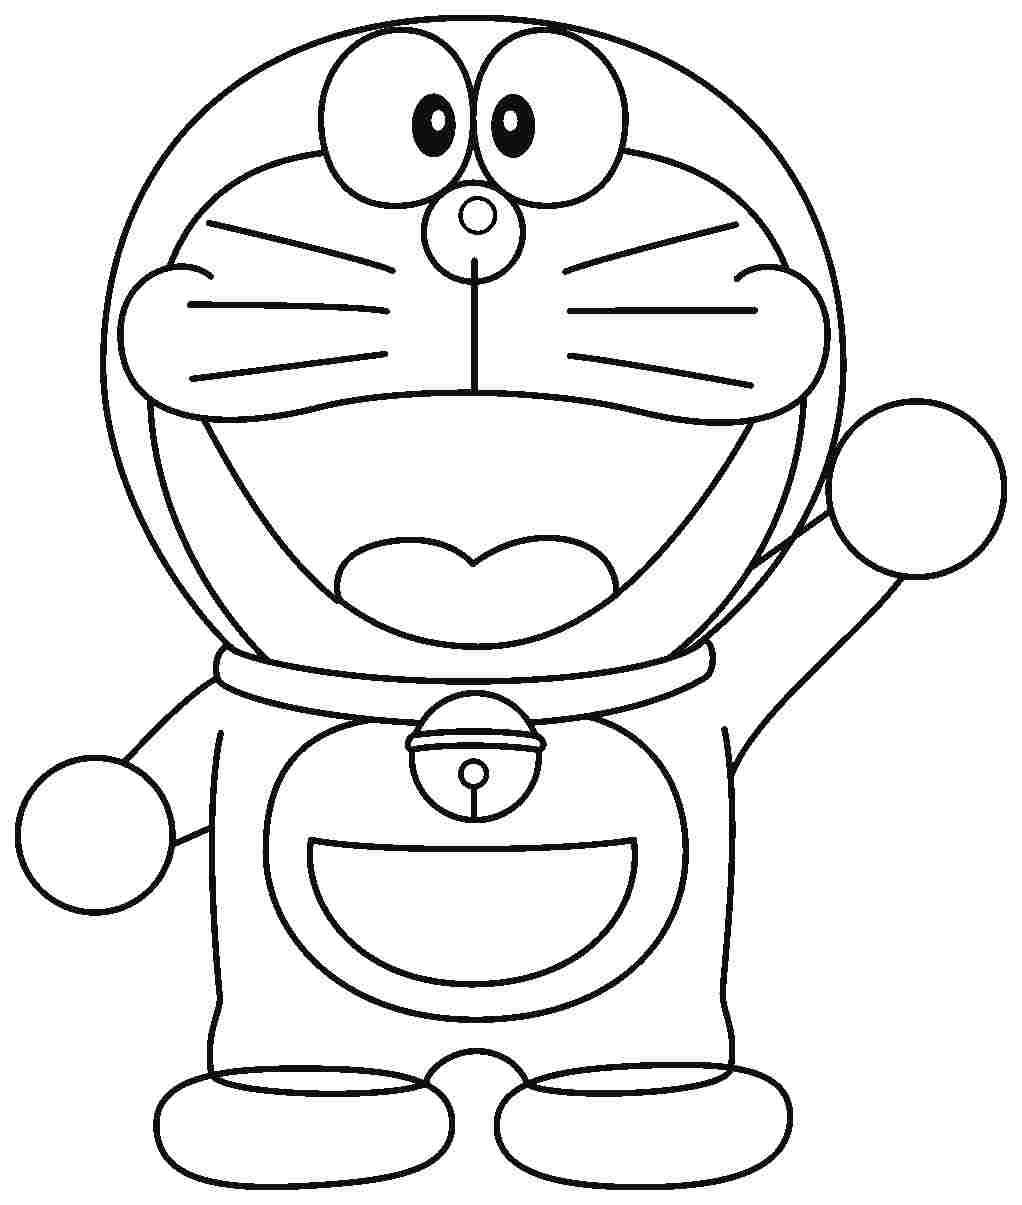 Wallpapers doramon cartoon doraemon coloring pages printable